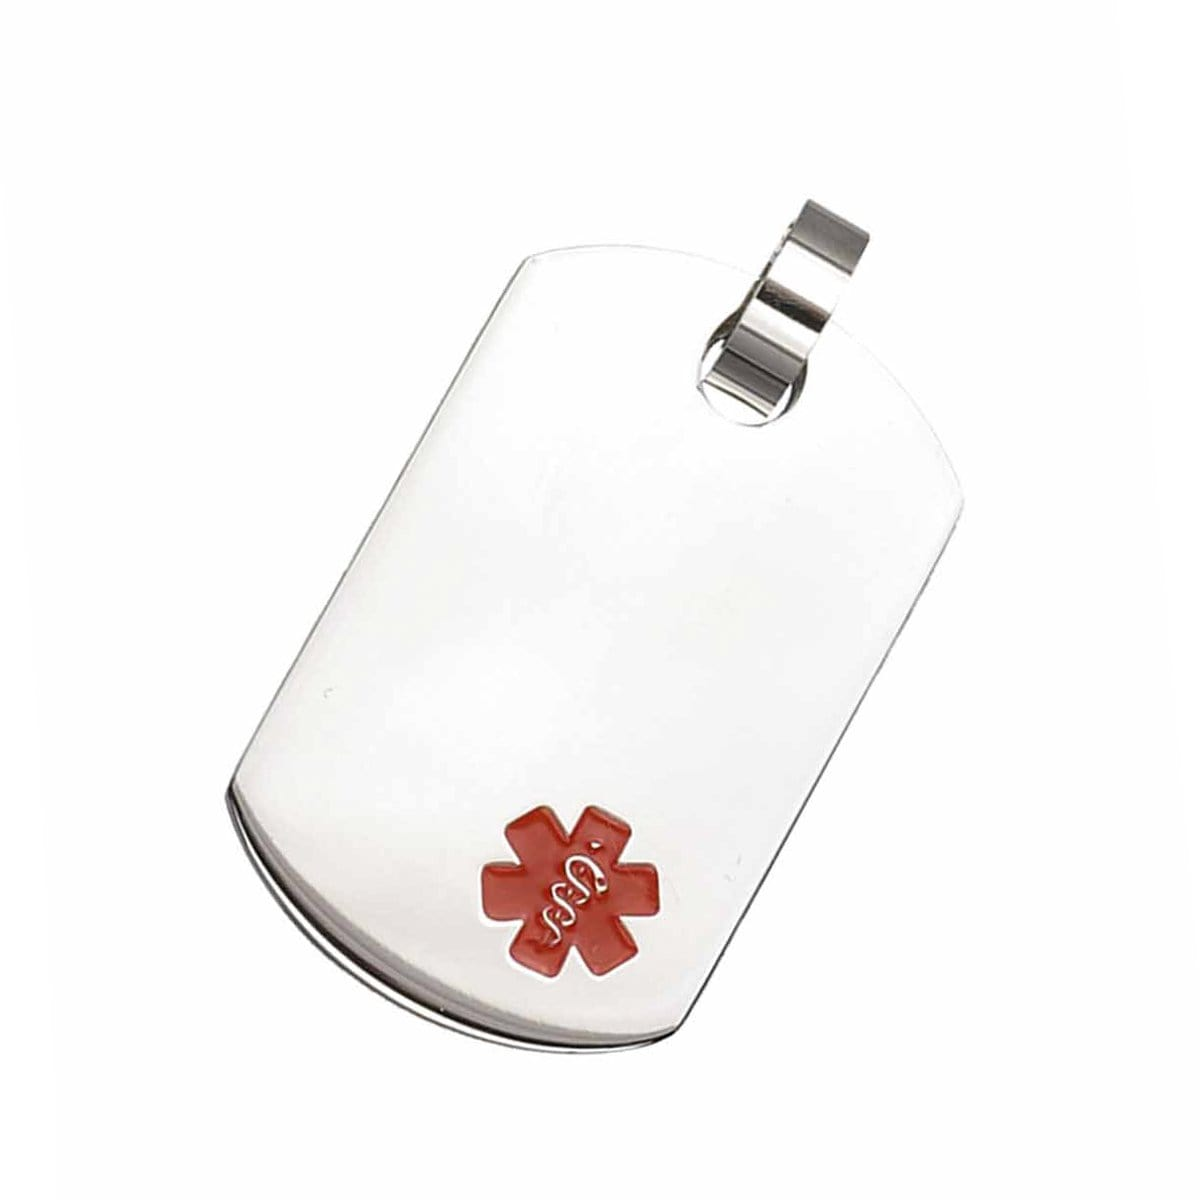 Red & Silver Stainless Steel Engravable Medical ID Tag Pendant & Chain Pendants